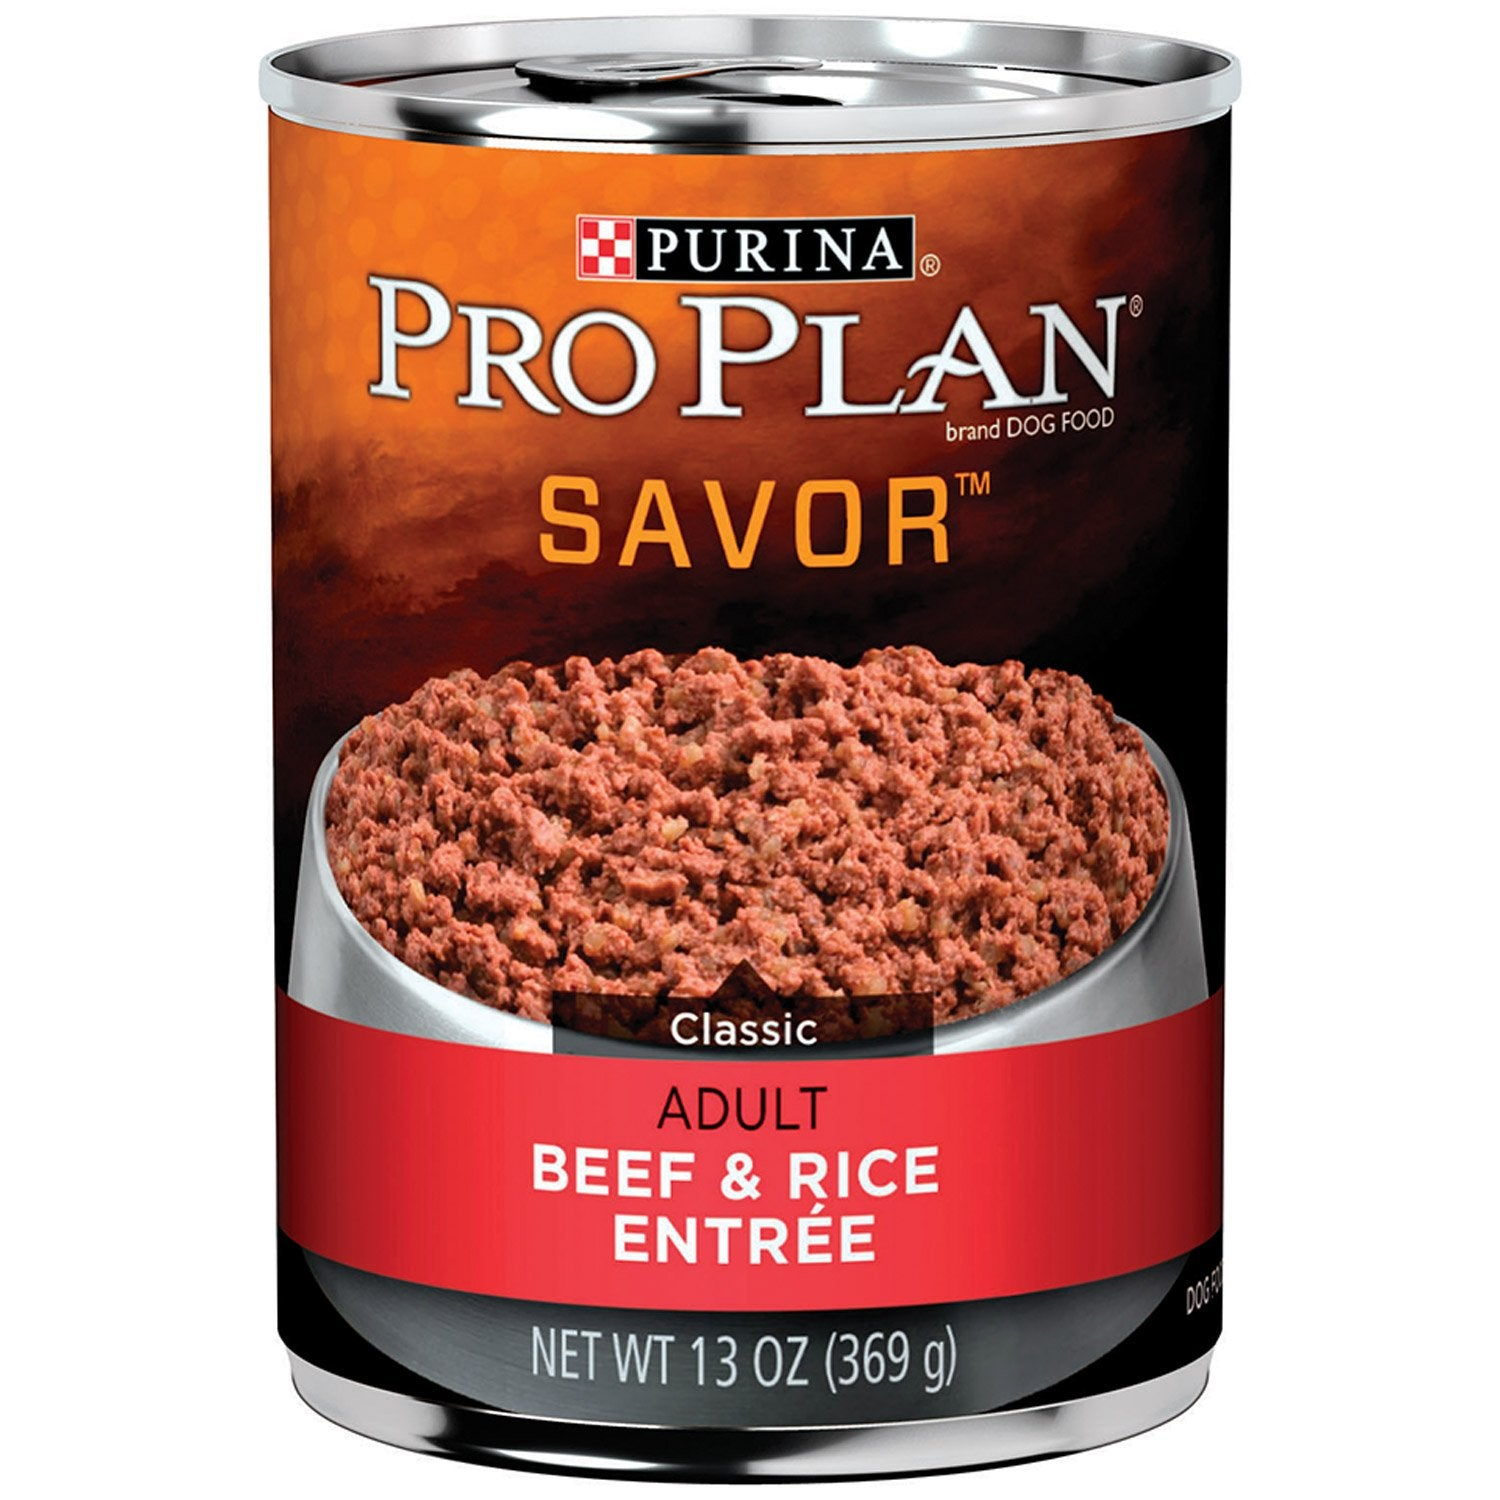 Pro Plan Savor Adult Beef & Rice Wet Dog Food